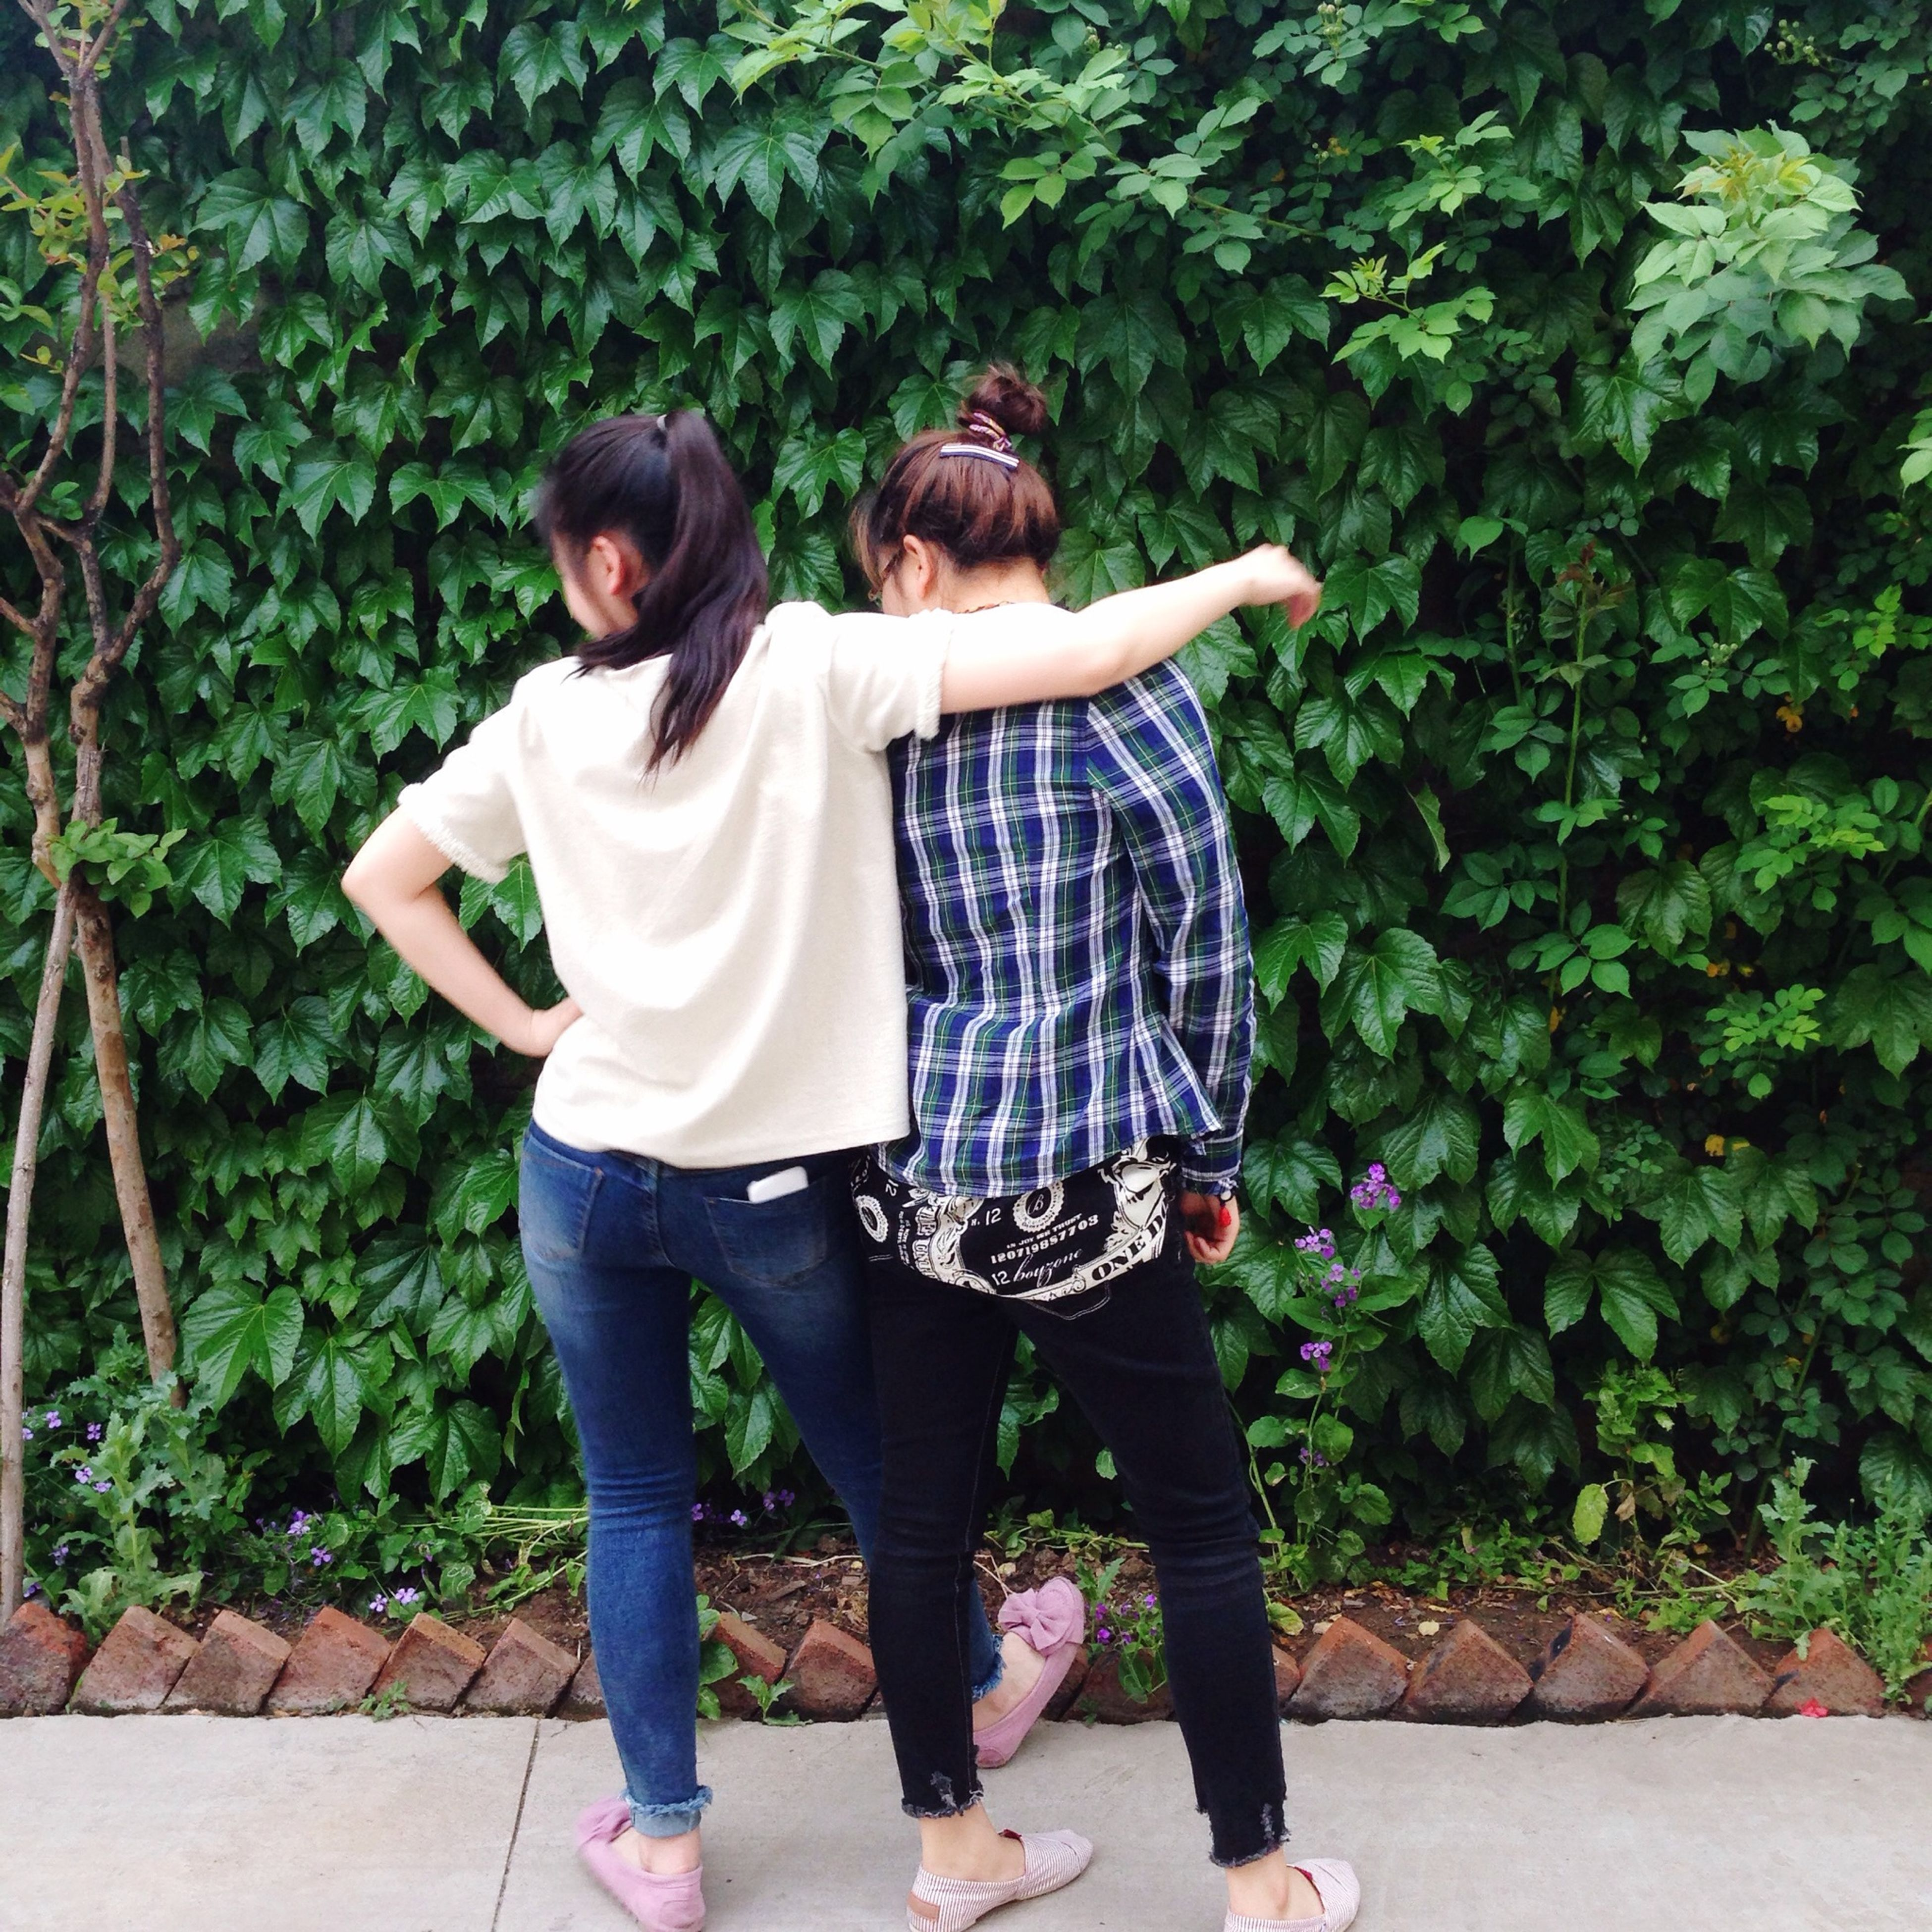 full length, casual clothing, lifestyles, leisure activity, togetherness, bonding, person, tree, love, rear view, standing, childhood, girls, plant, park - man made space, young women, young adult